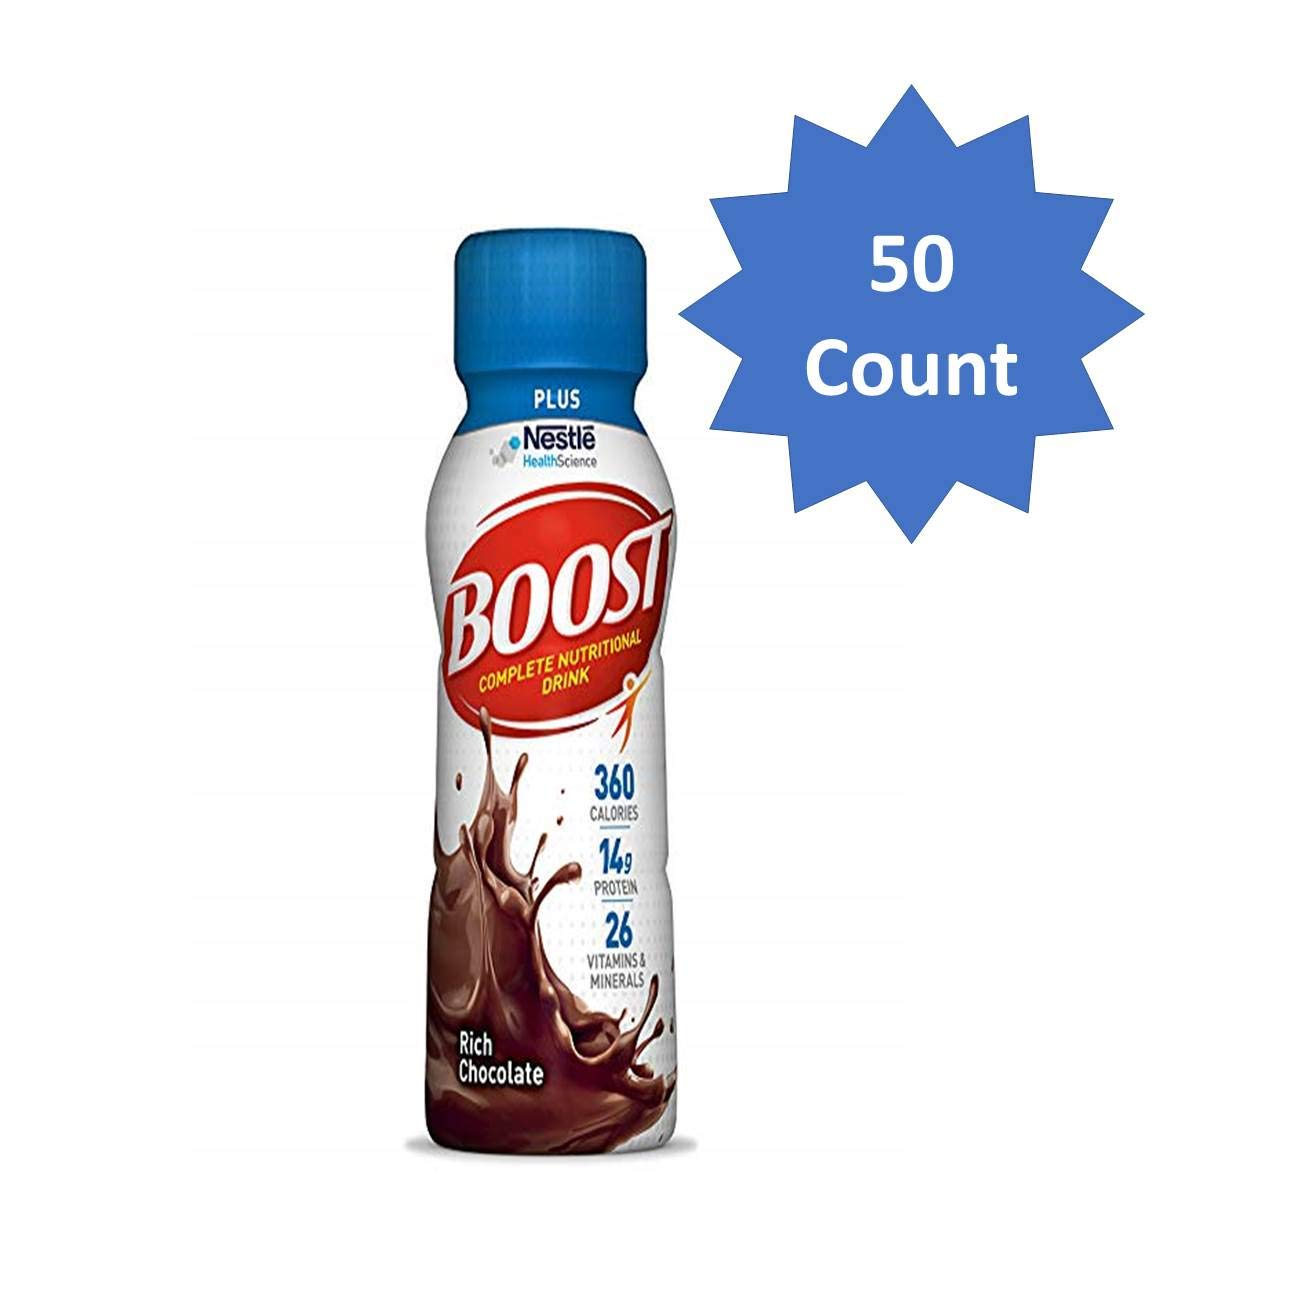 Boost Plus Complete Nutritional Drink, Rich Chocolate, 8 fl oz Bottle, 50 Count (Chocolate - 50 Count) by Boost Nutritional Drinks